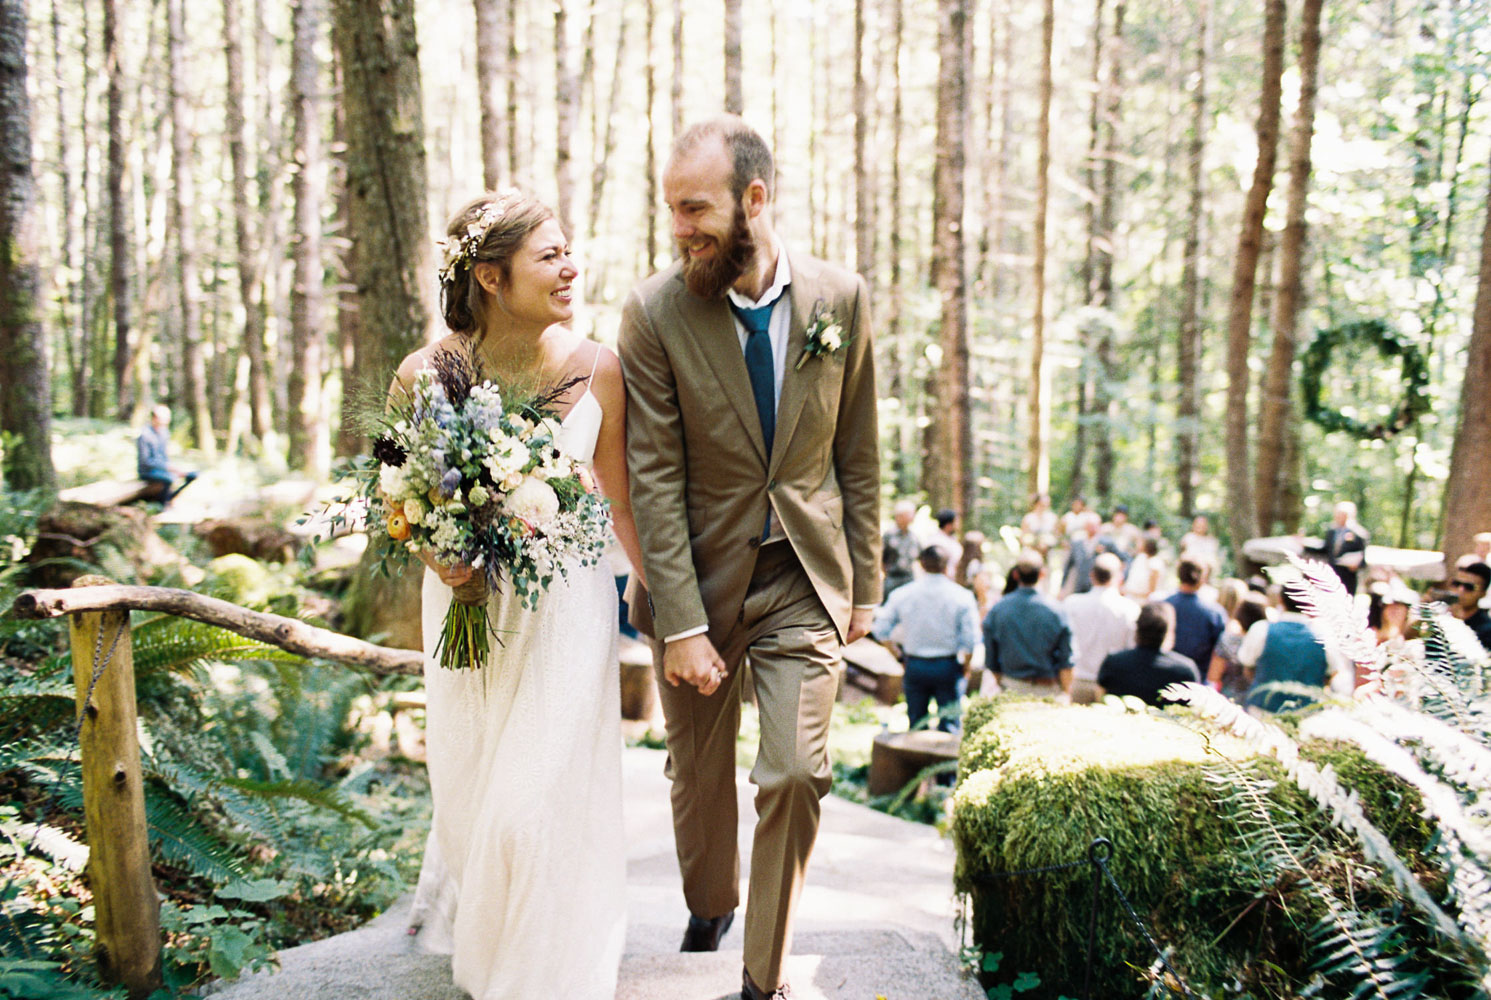 Just Married portraits by Anna Peters Seattle Wedding Photographer at Wellspring Spa